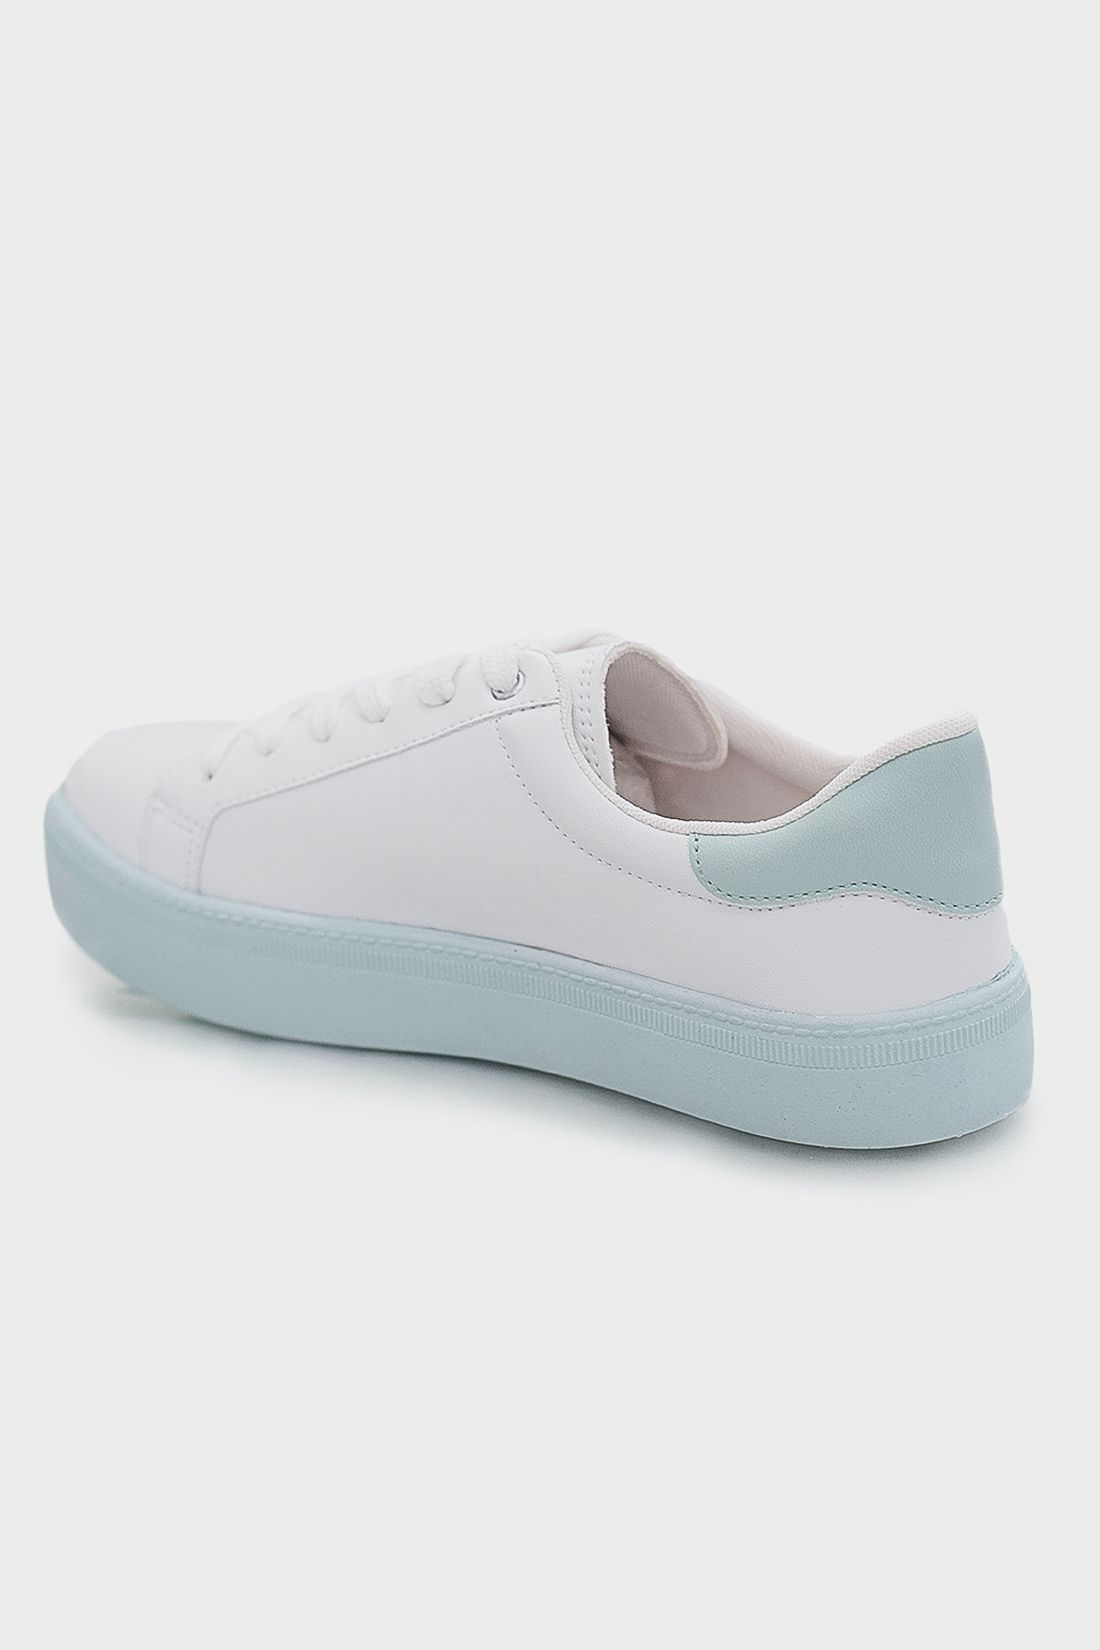 Tenis Casual Fem Anbe Pastel